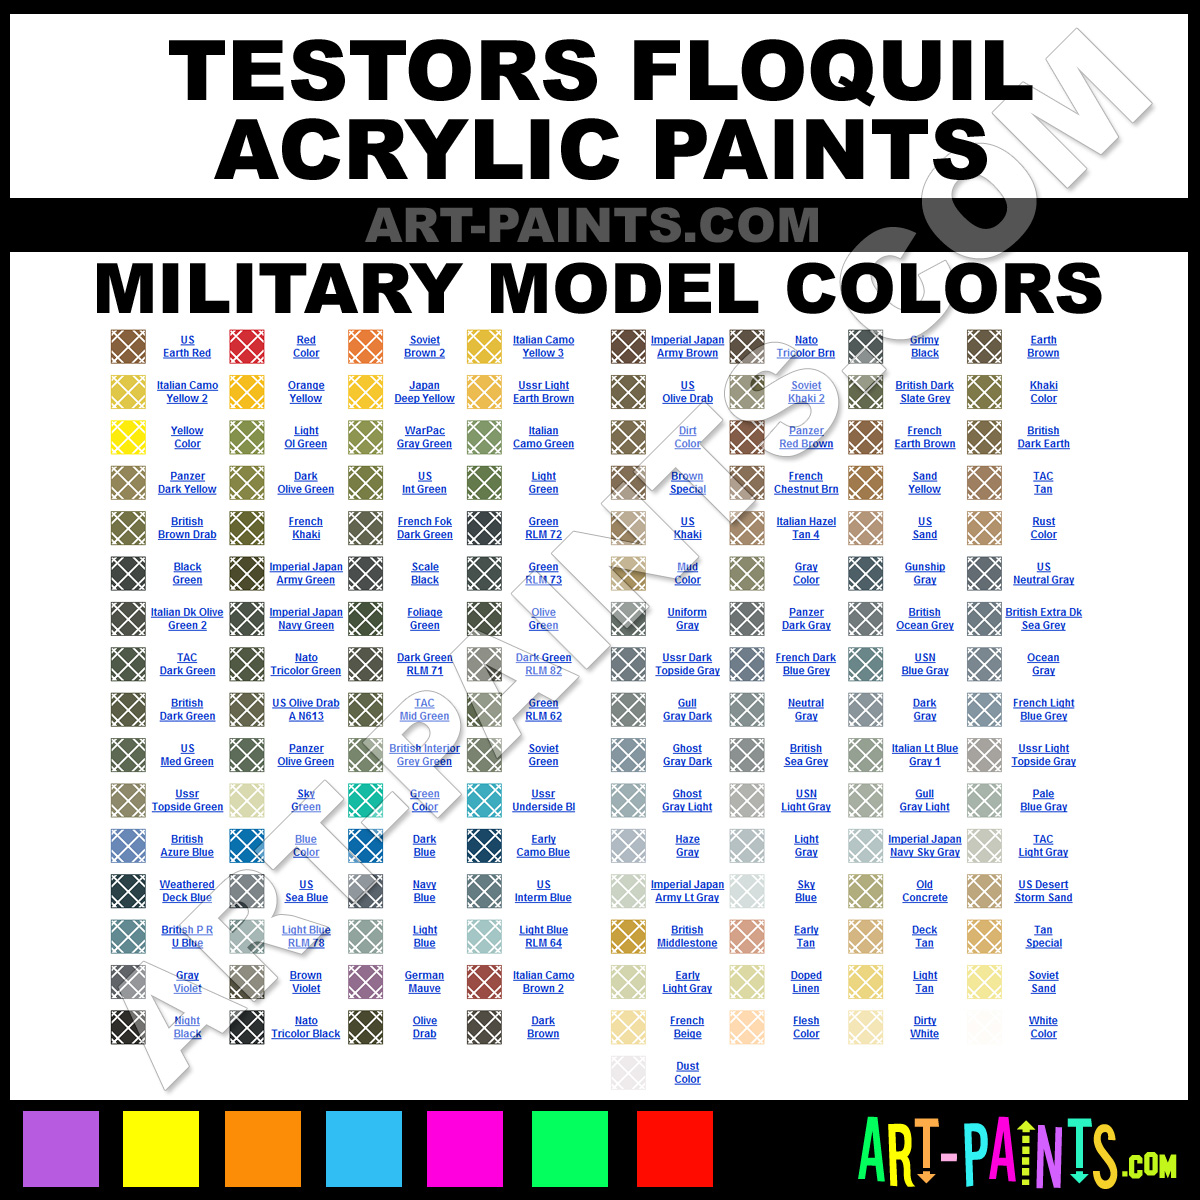 Floquil Military Model Acrylics - Floquil Military Model Paints